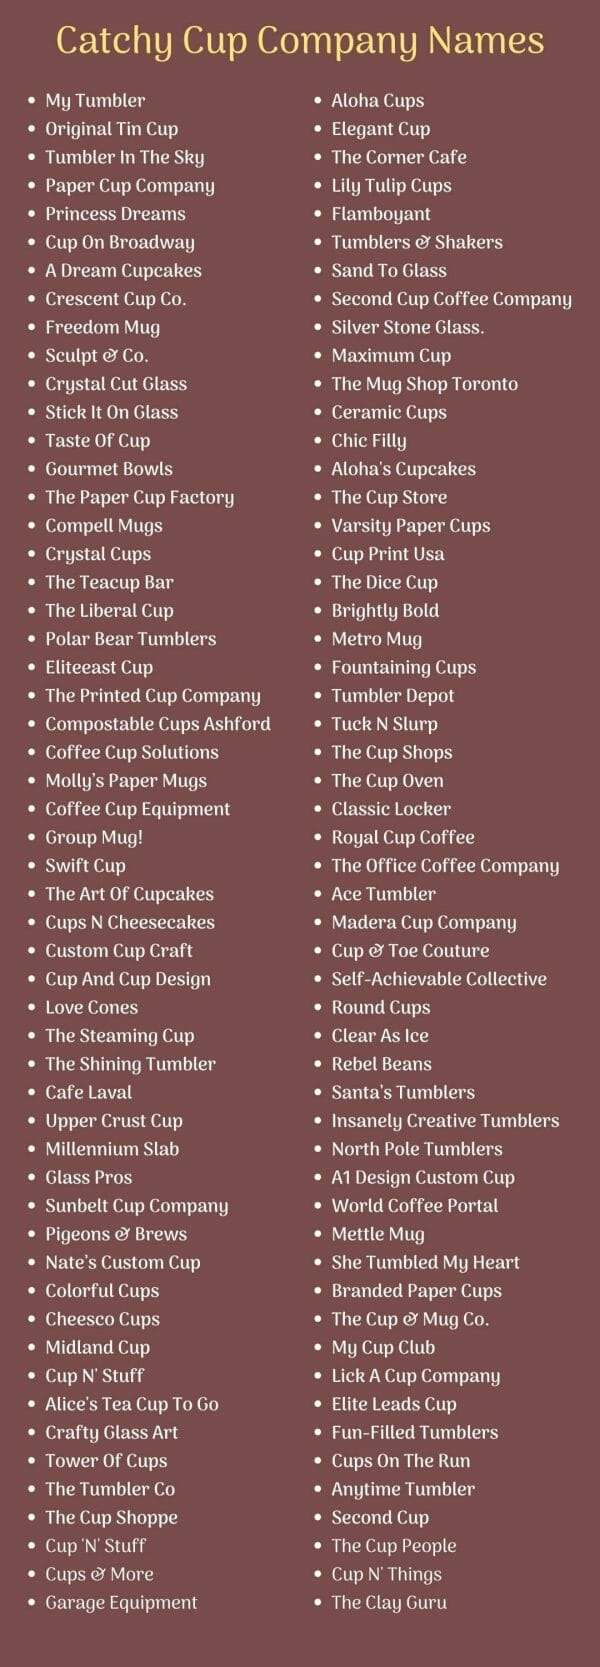 Catchy Cup Company Names ideas